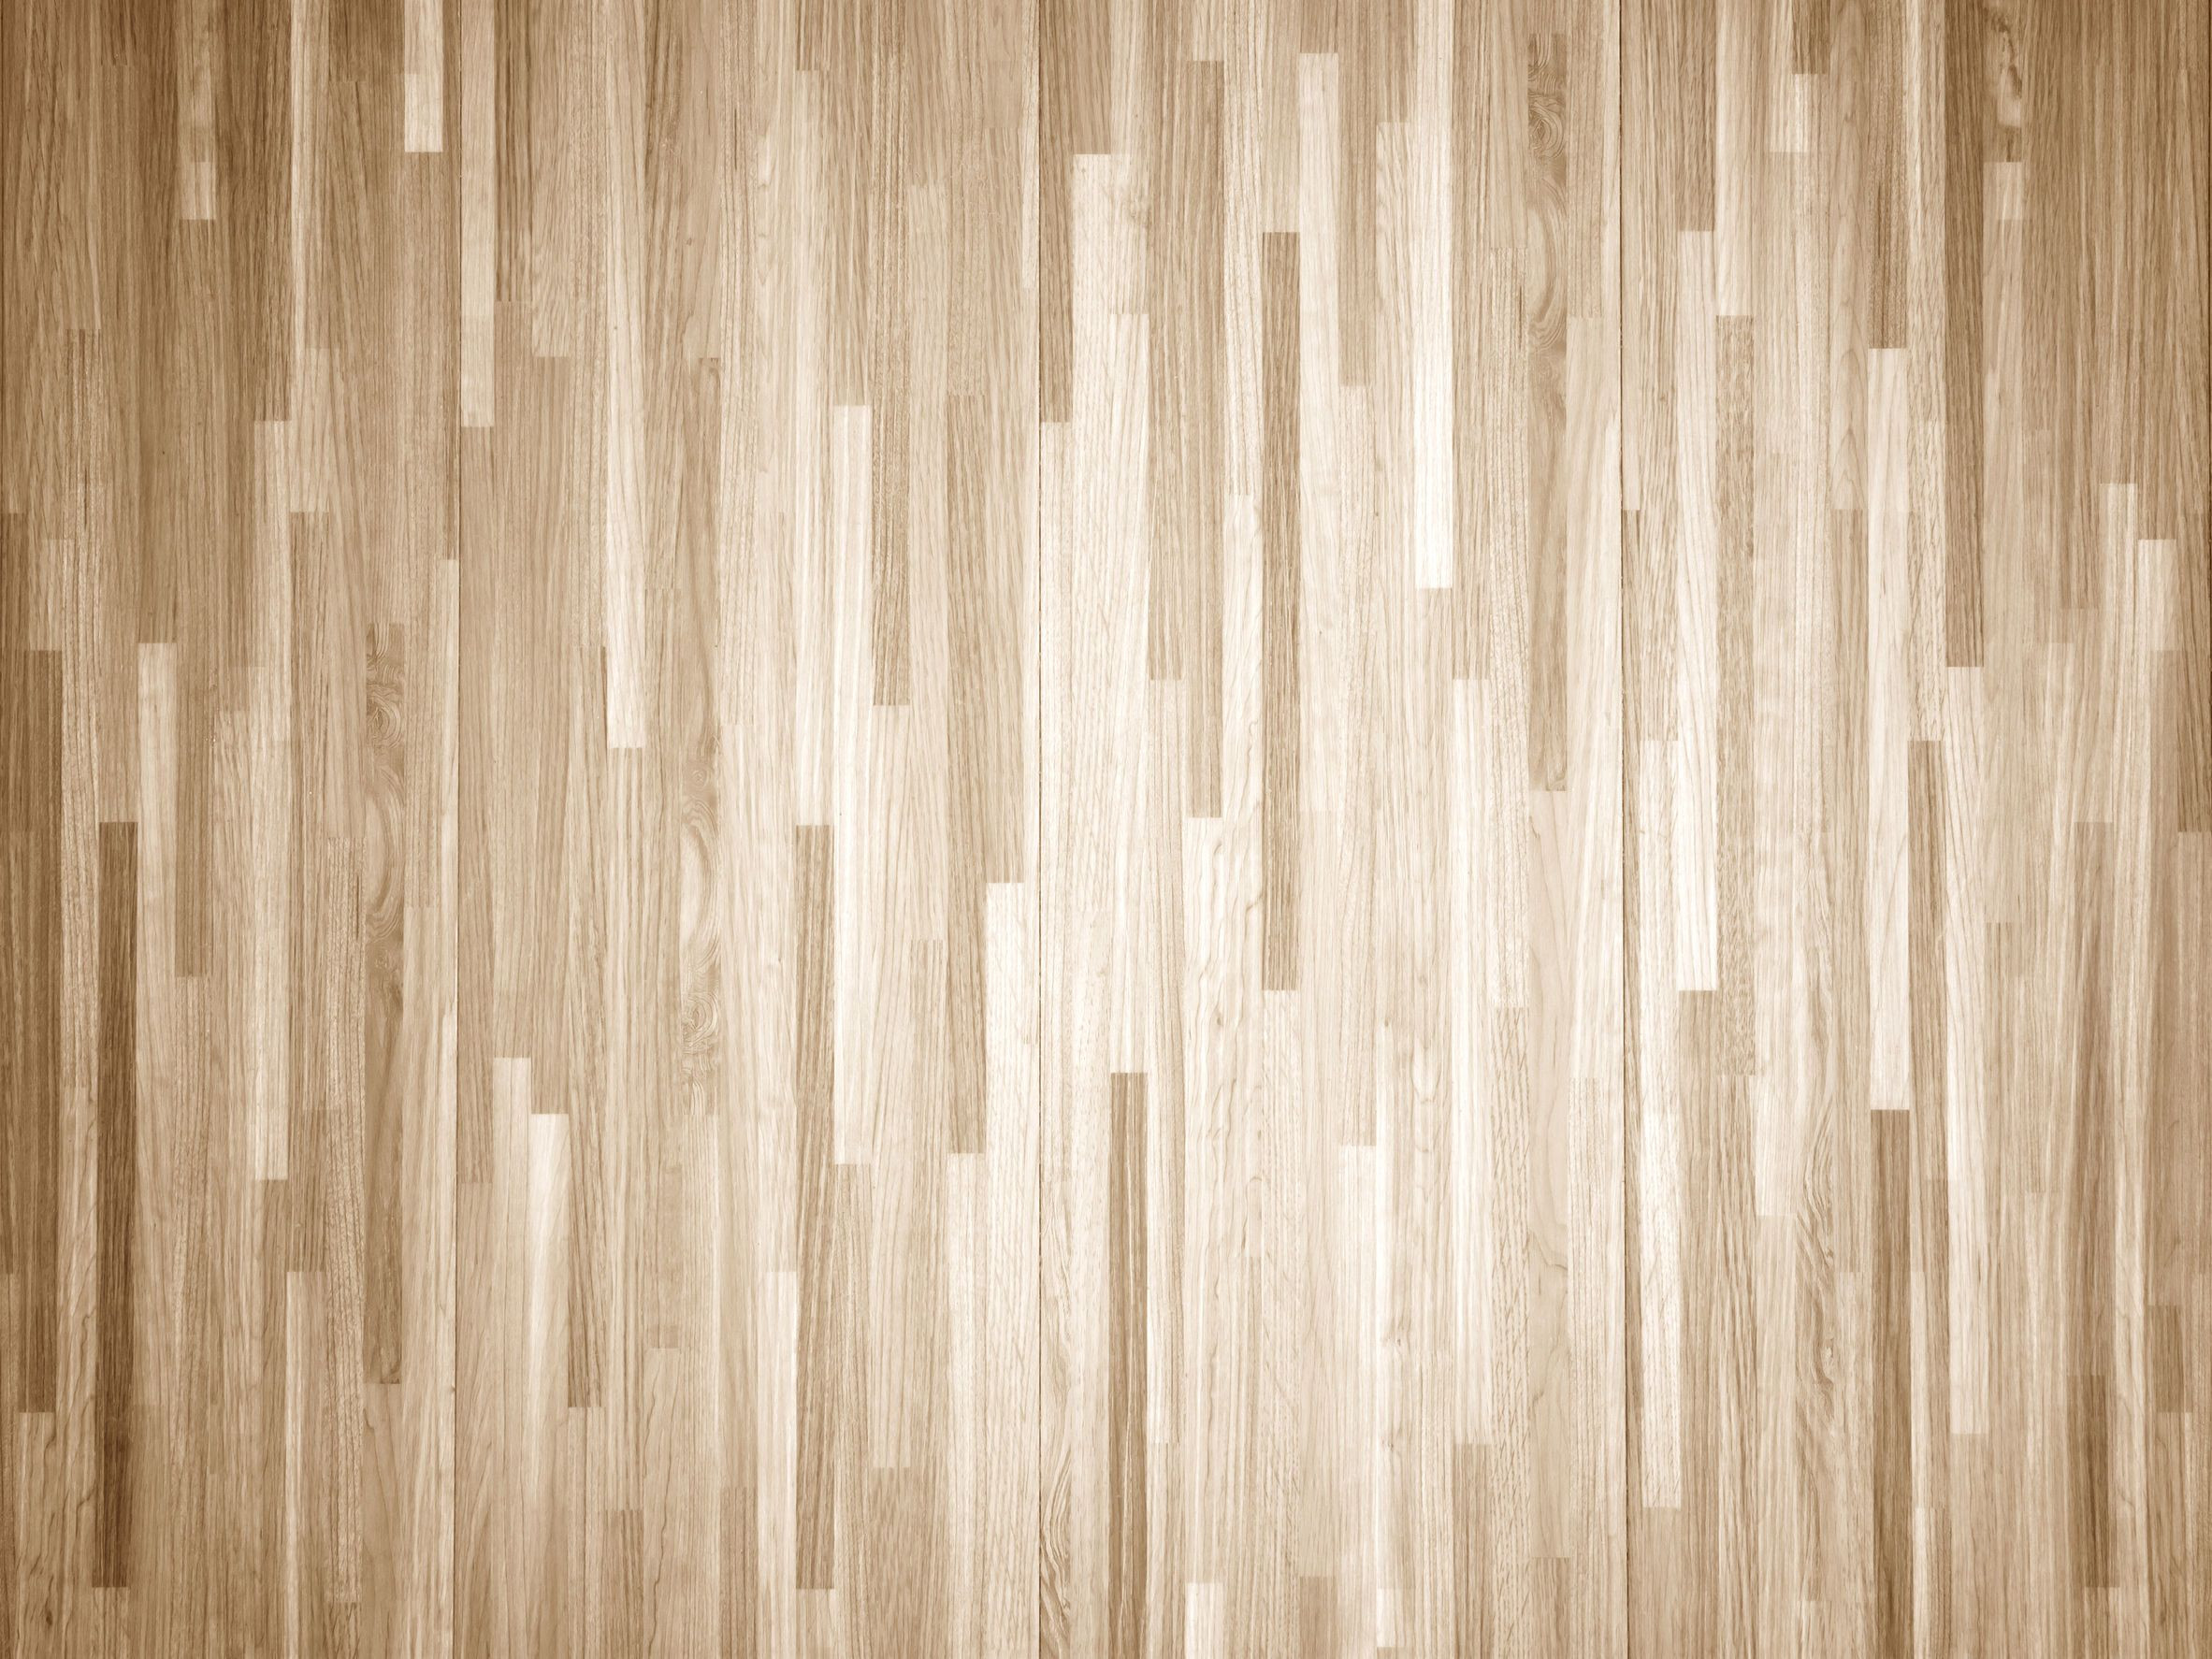 how to repair hardwood floor scratches of how to chemically strip wood floors woodfloordoctor com inside you